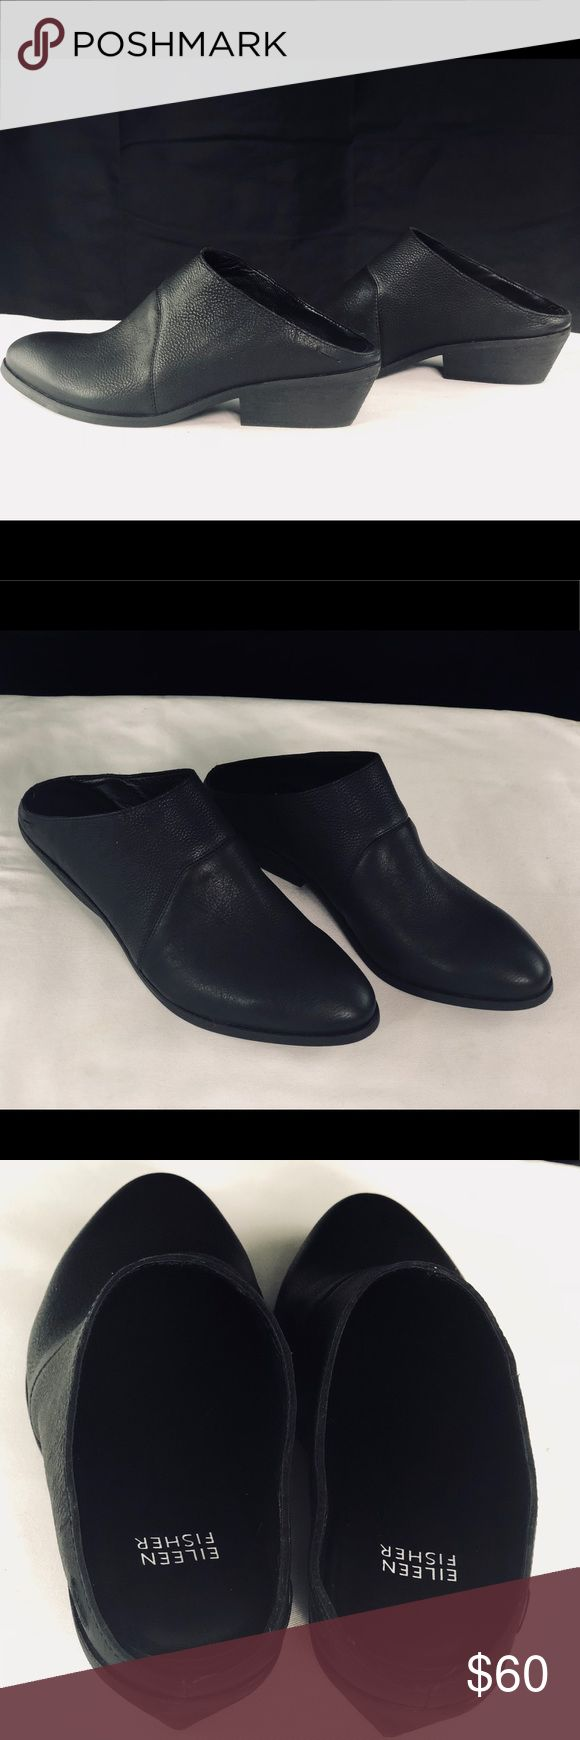 584 Best My Posh Picks Images On Pinterest Distance Long Elaine Navy Top Leux Studio Xs Eileen Fisher Leather Black Clog Booties